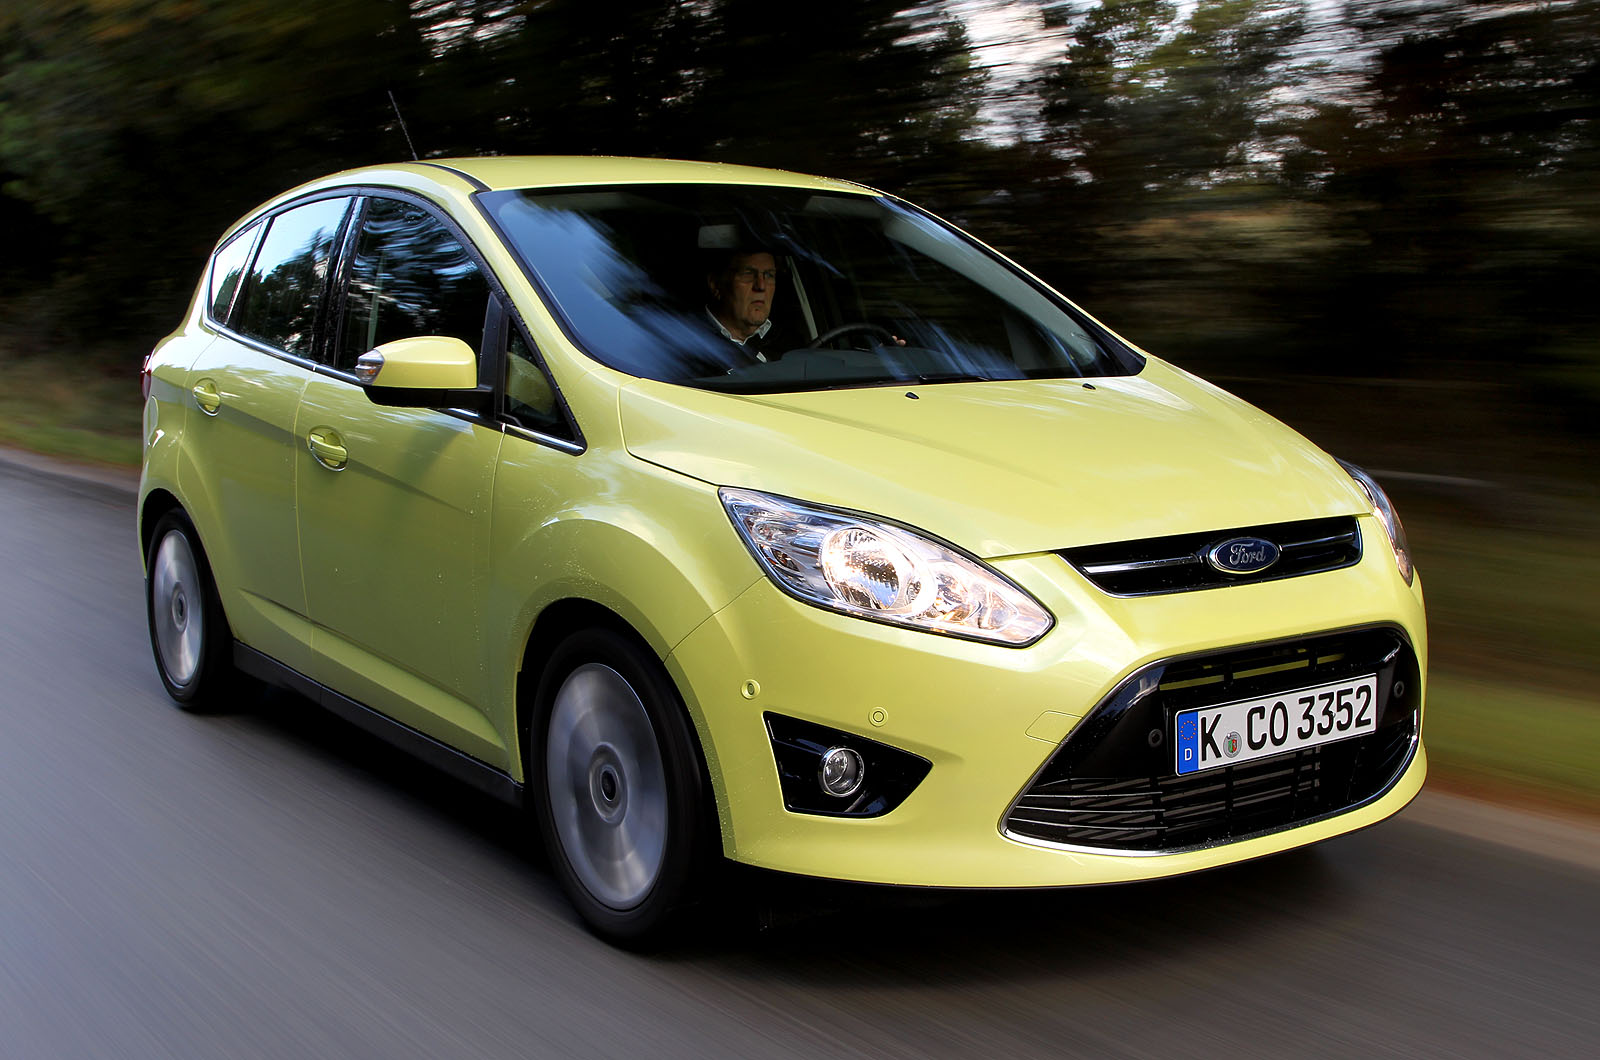 ford c-max 1.6 ecoboost-pic. 2